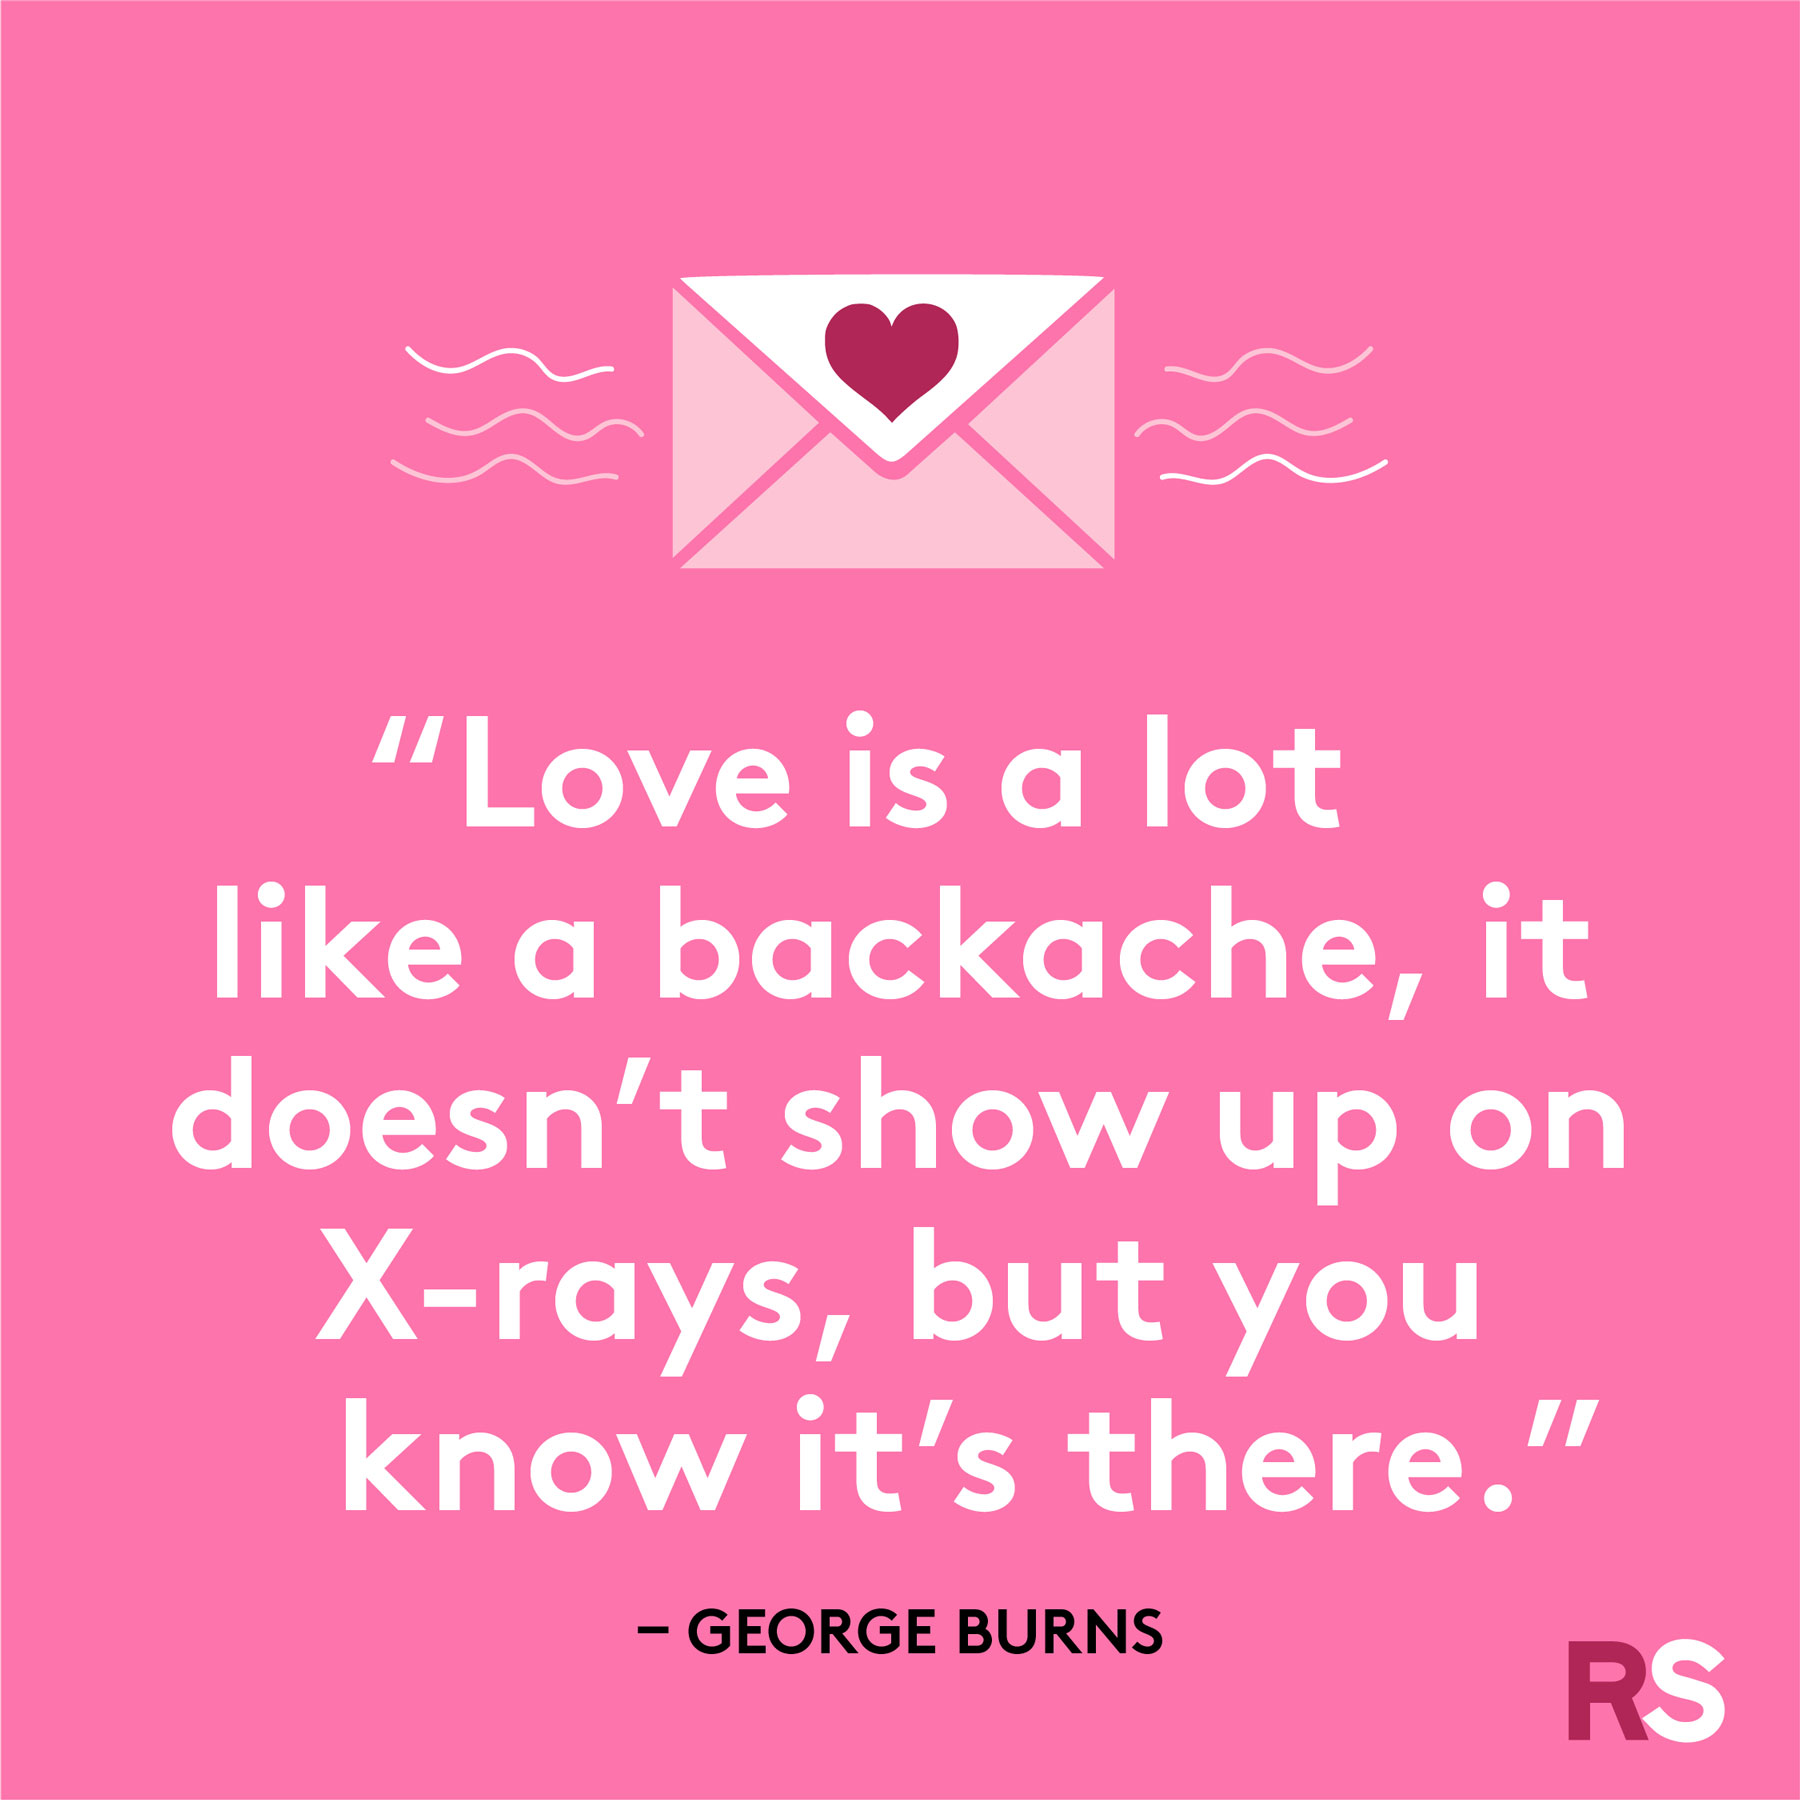 """Love is a lot like a backache, it doesn't show up on X-rays, but you know it's there."""